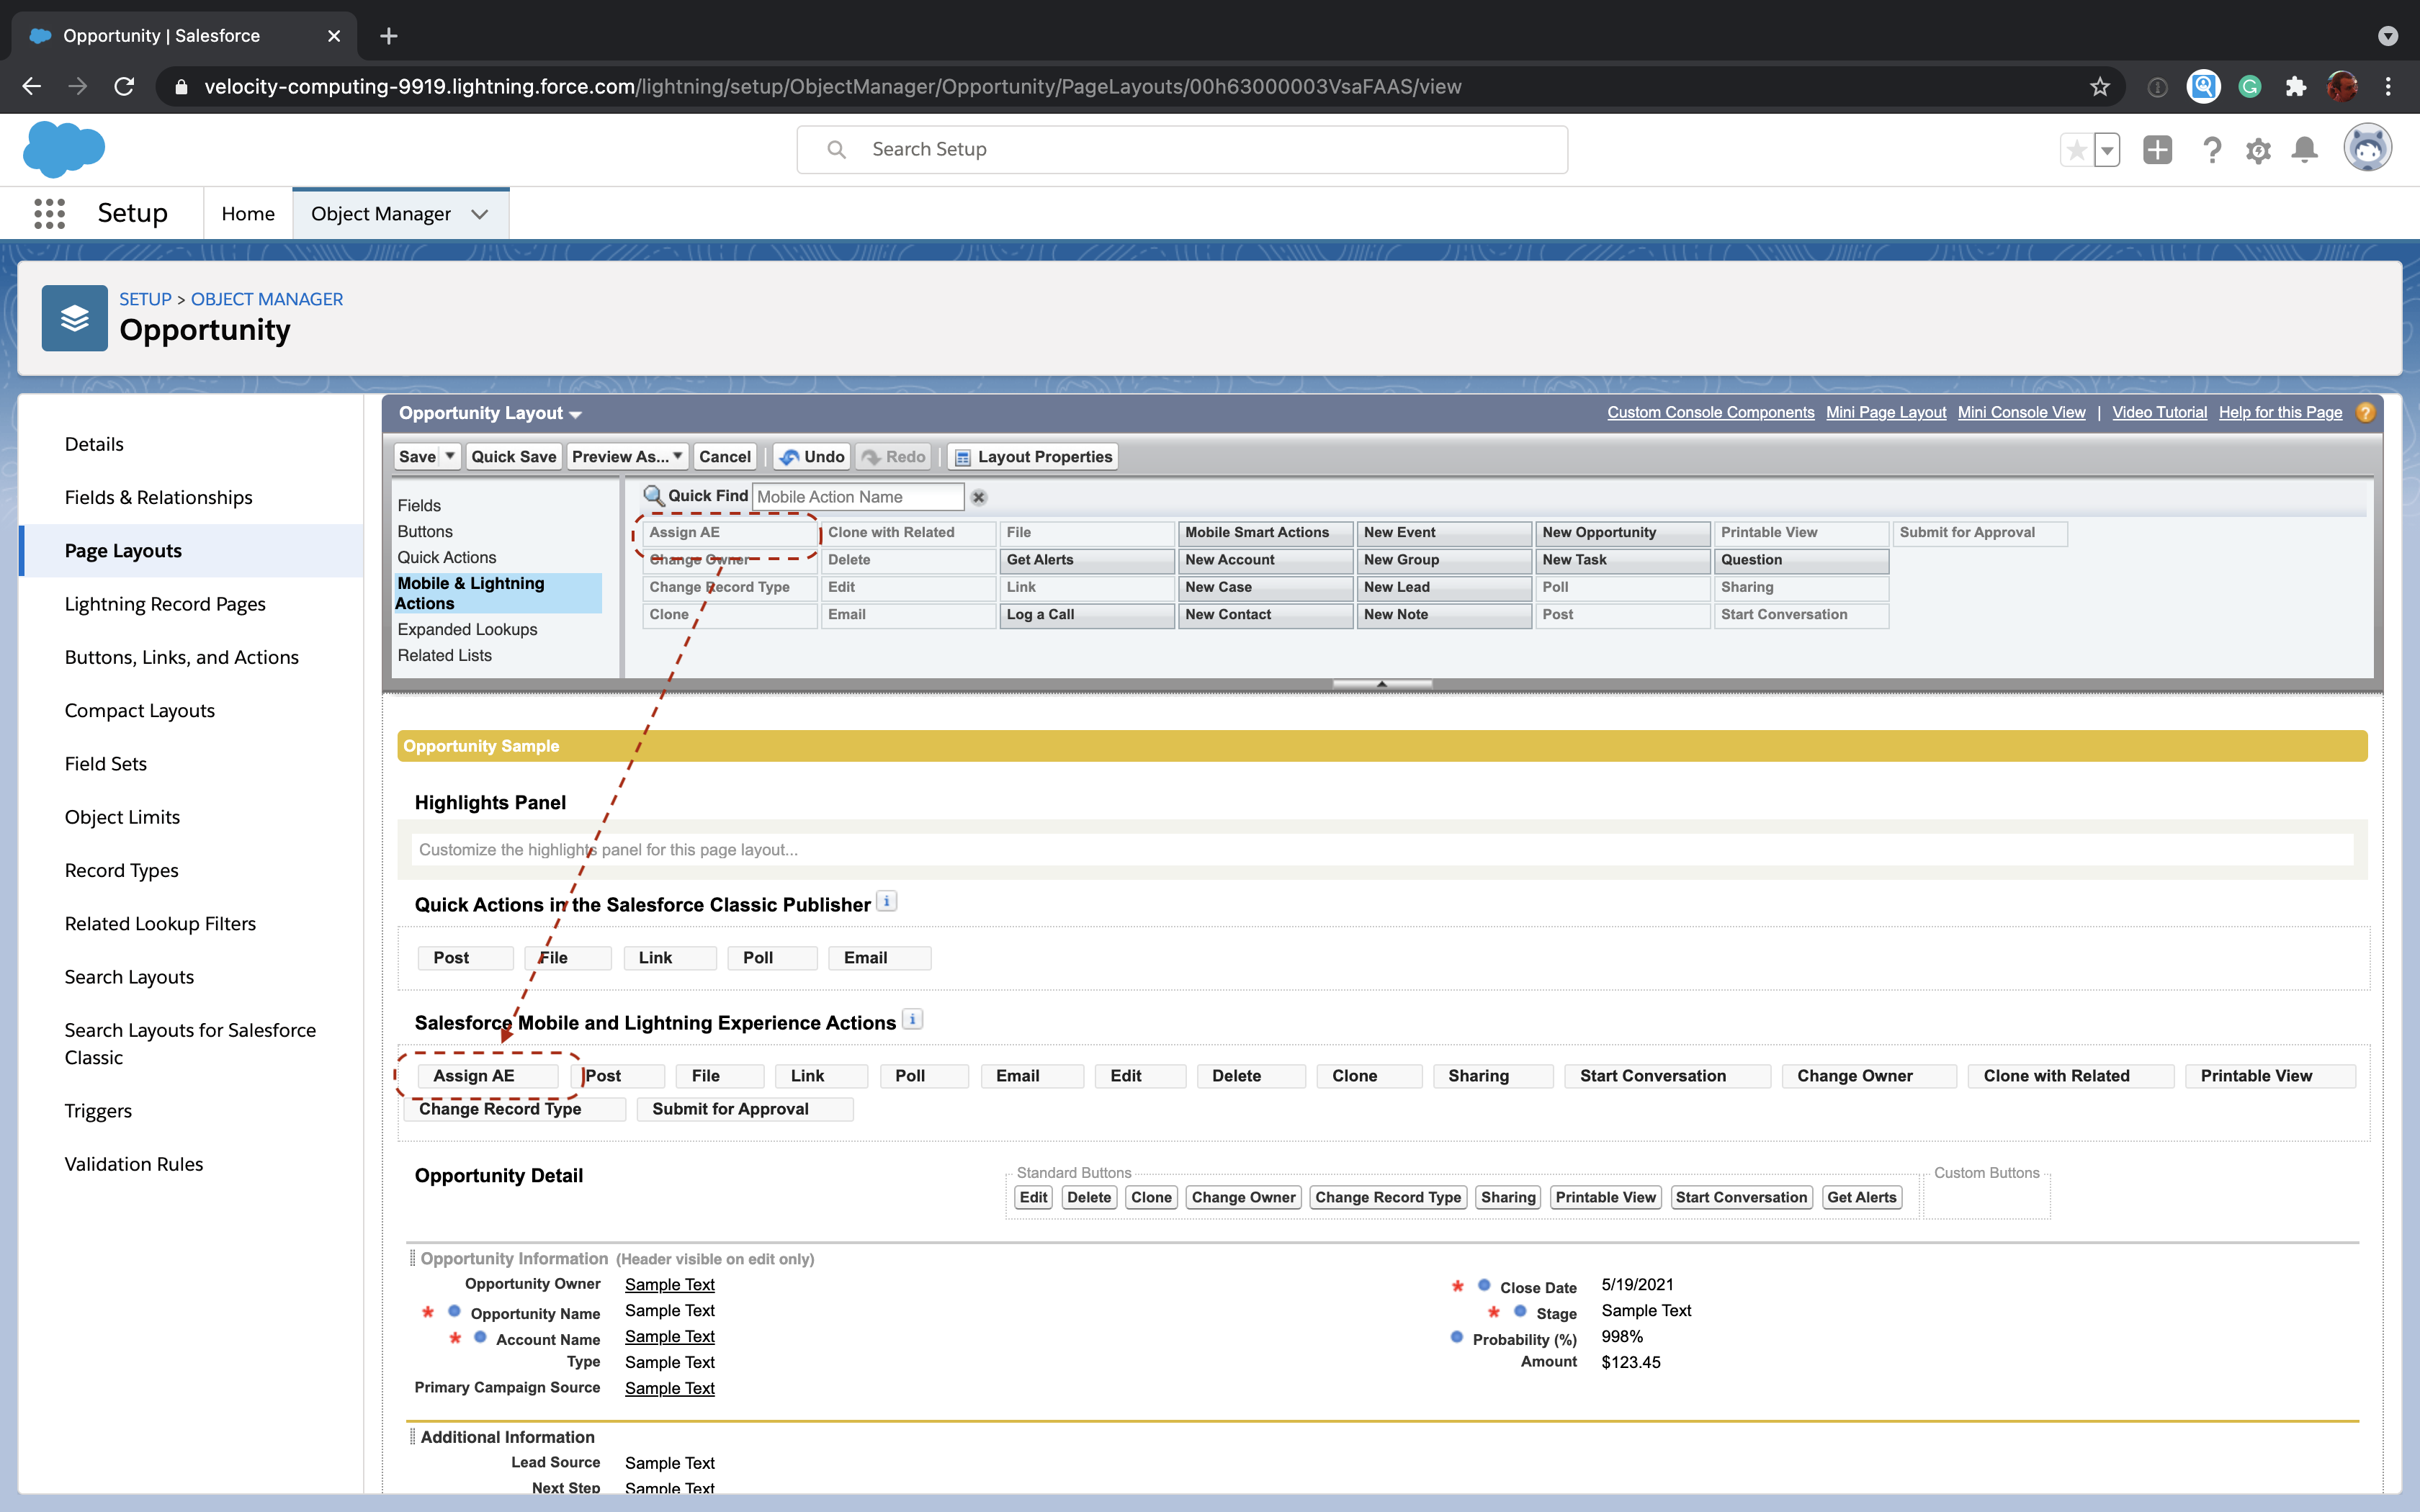 Salesforce Opportunity page layout editor showing how to drag the Assign AE action into the layout